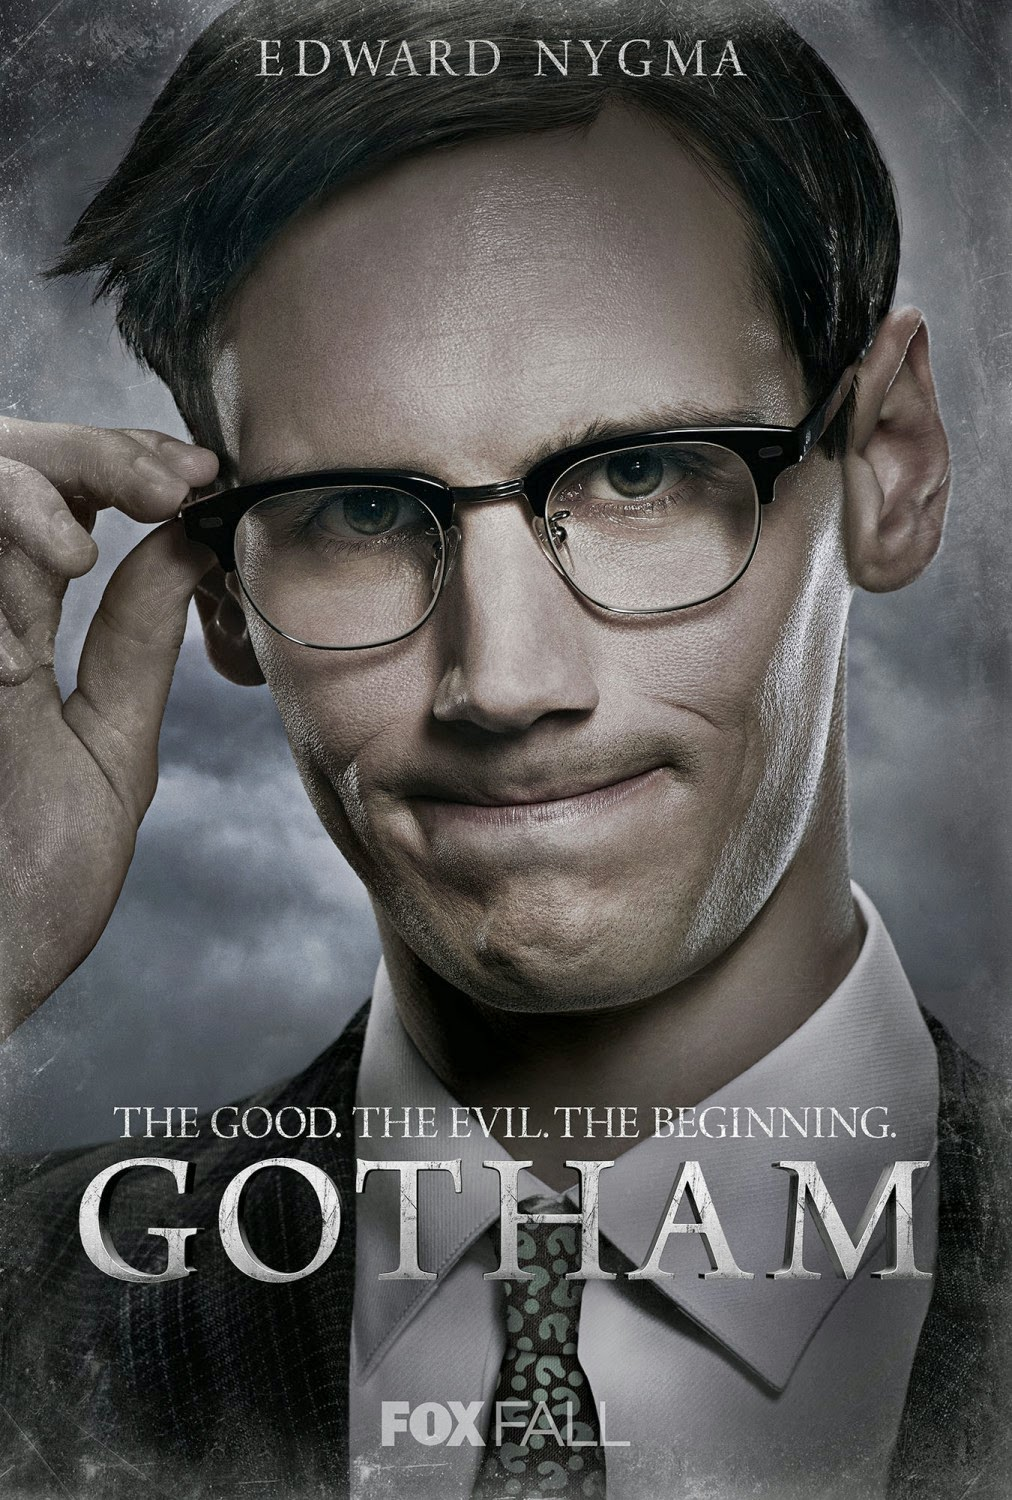 "Gotham ""The Good. The Evil. The Beginning."" Character TV Poster Set - Cory Michael Smith as Edward Nygma-The Riddler"